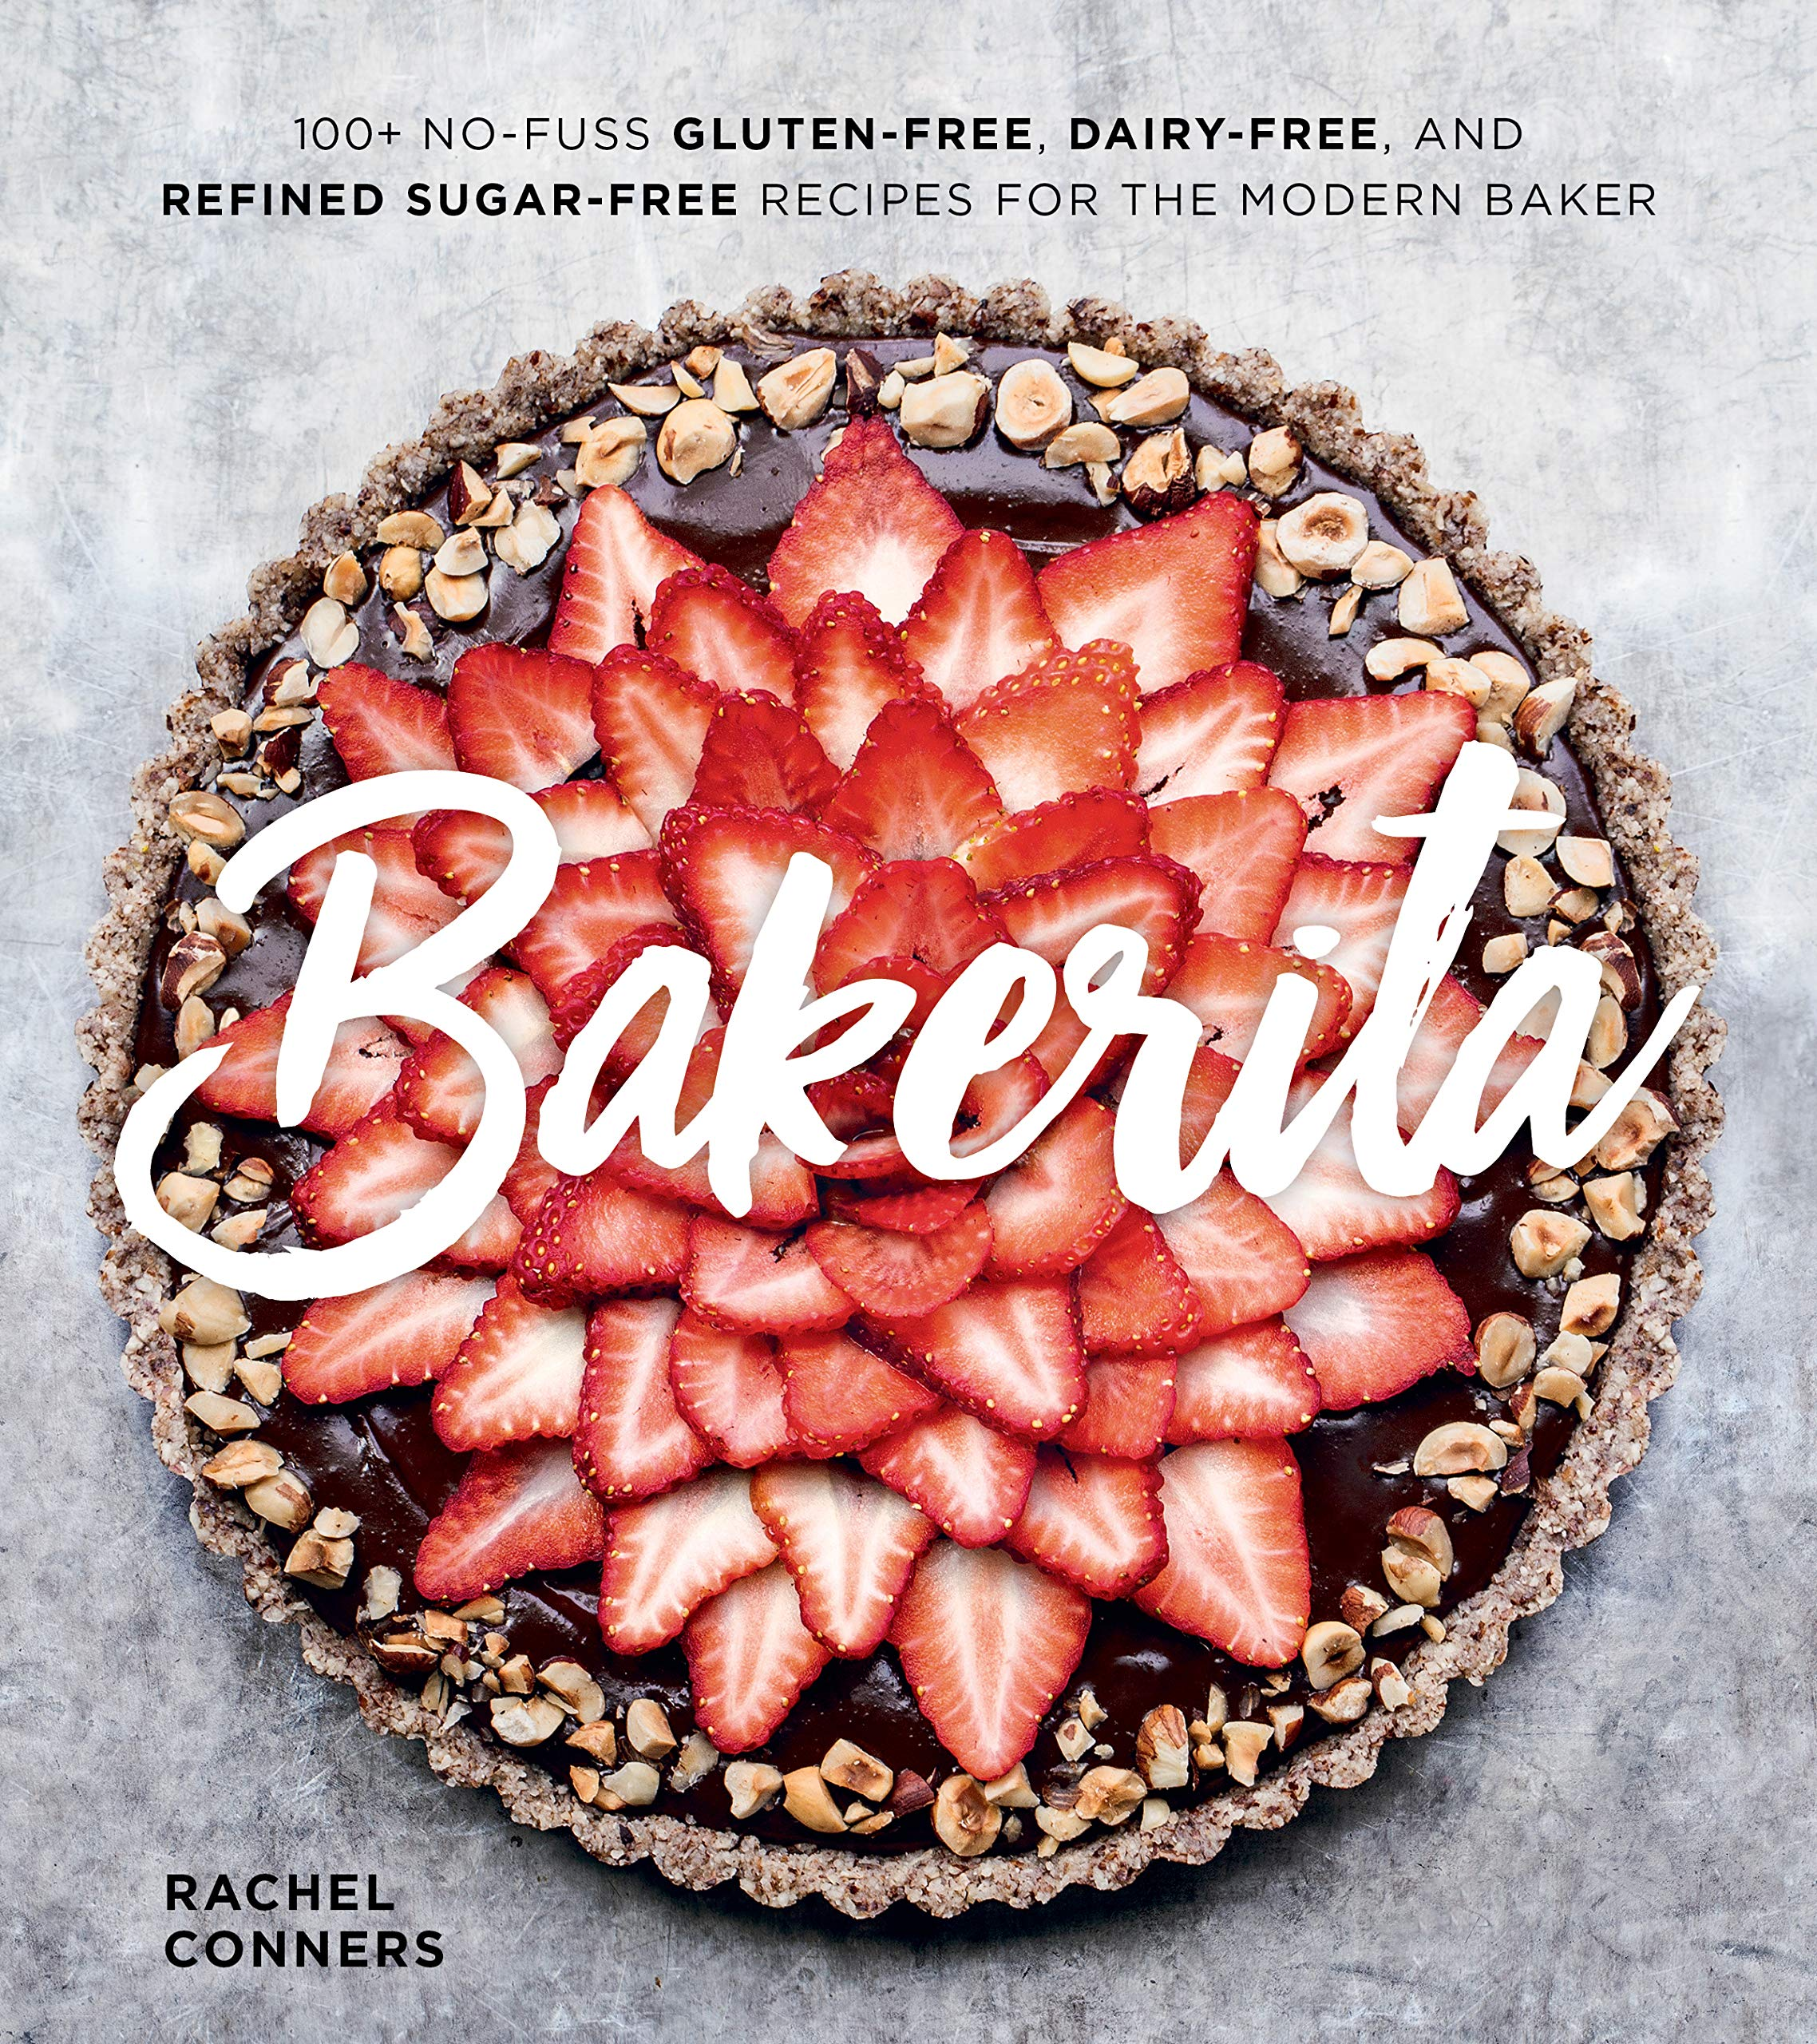 Image OfBakerita: 100+ No-Fuss Gluten-Free, Dairy-Free, And Refined Sugar-Free Recipes For The Modern Baker